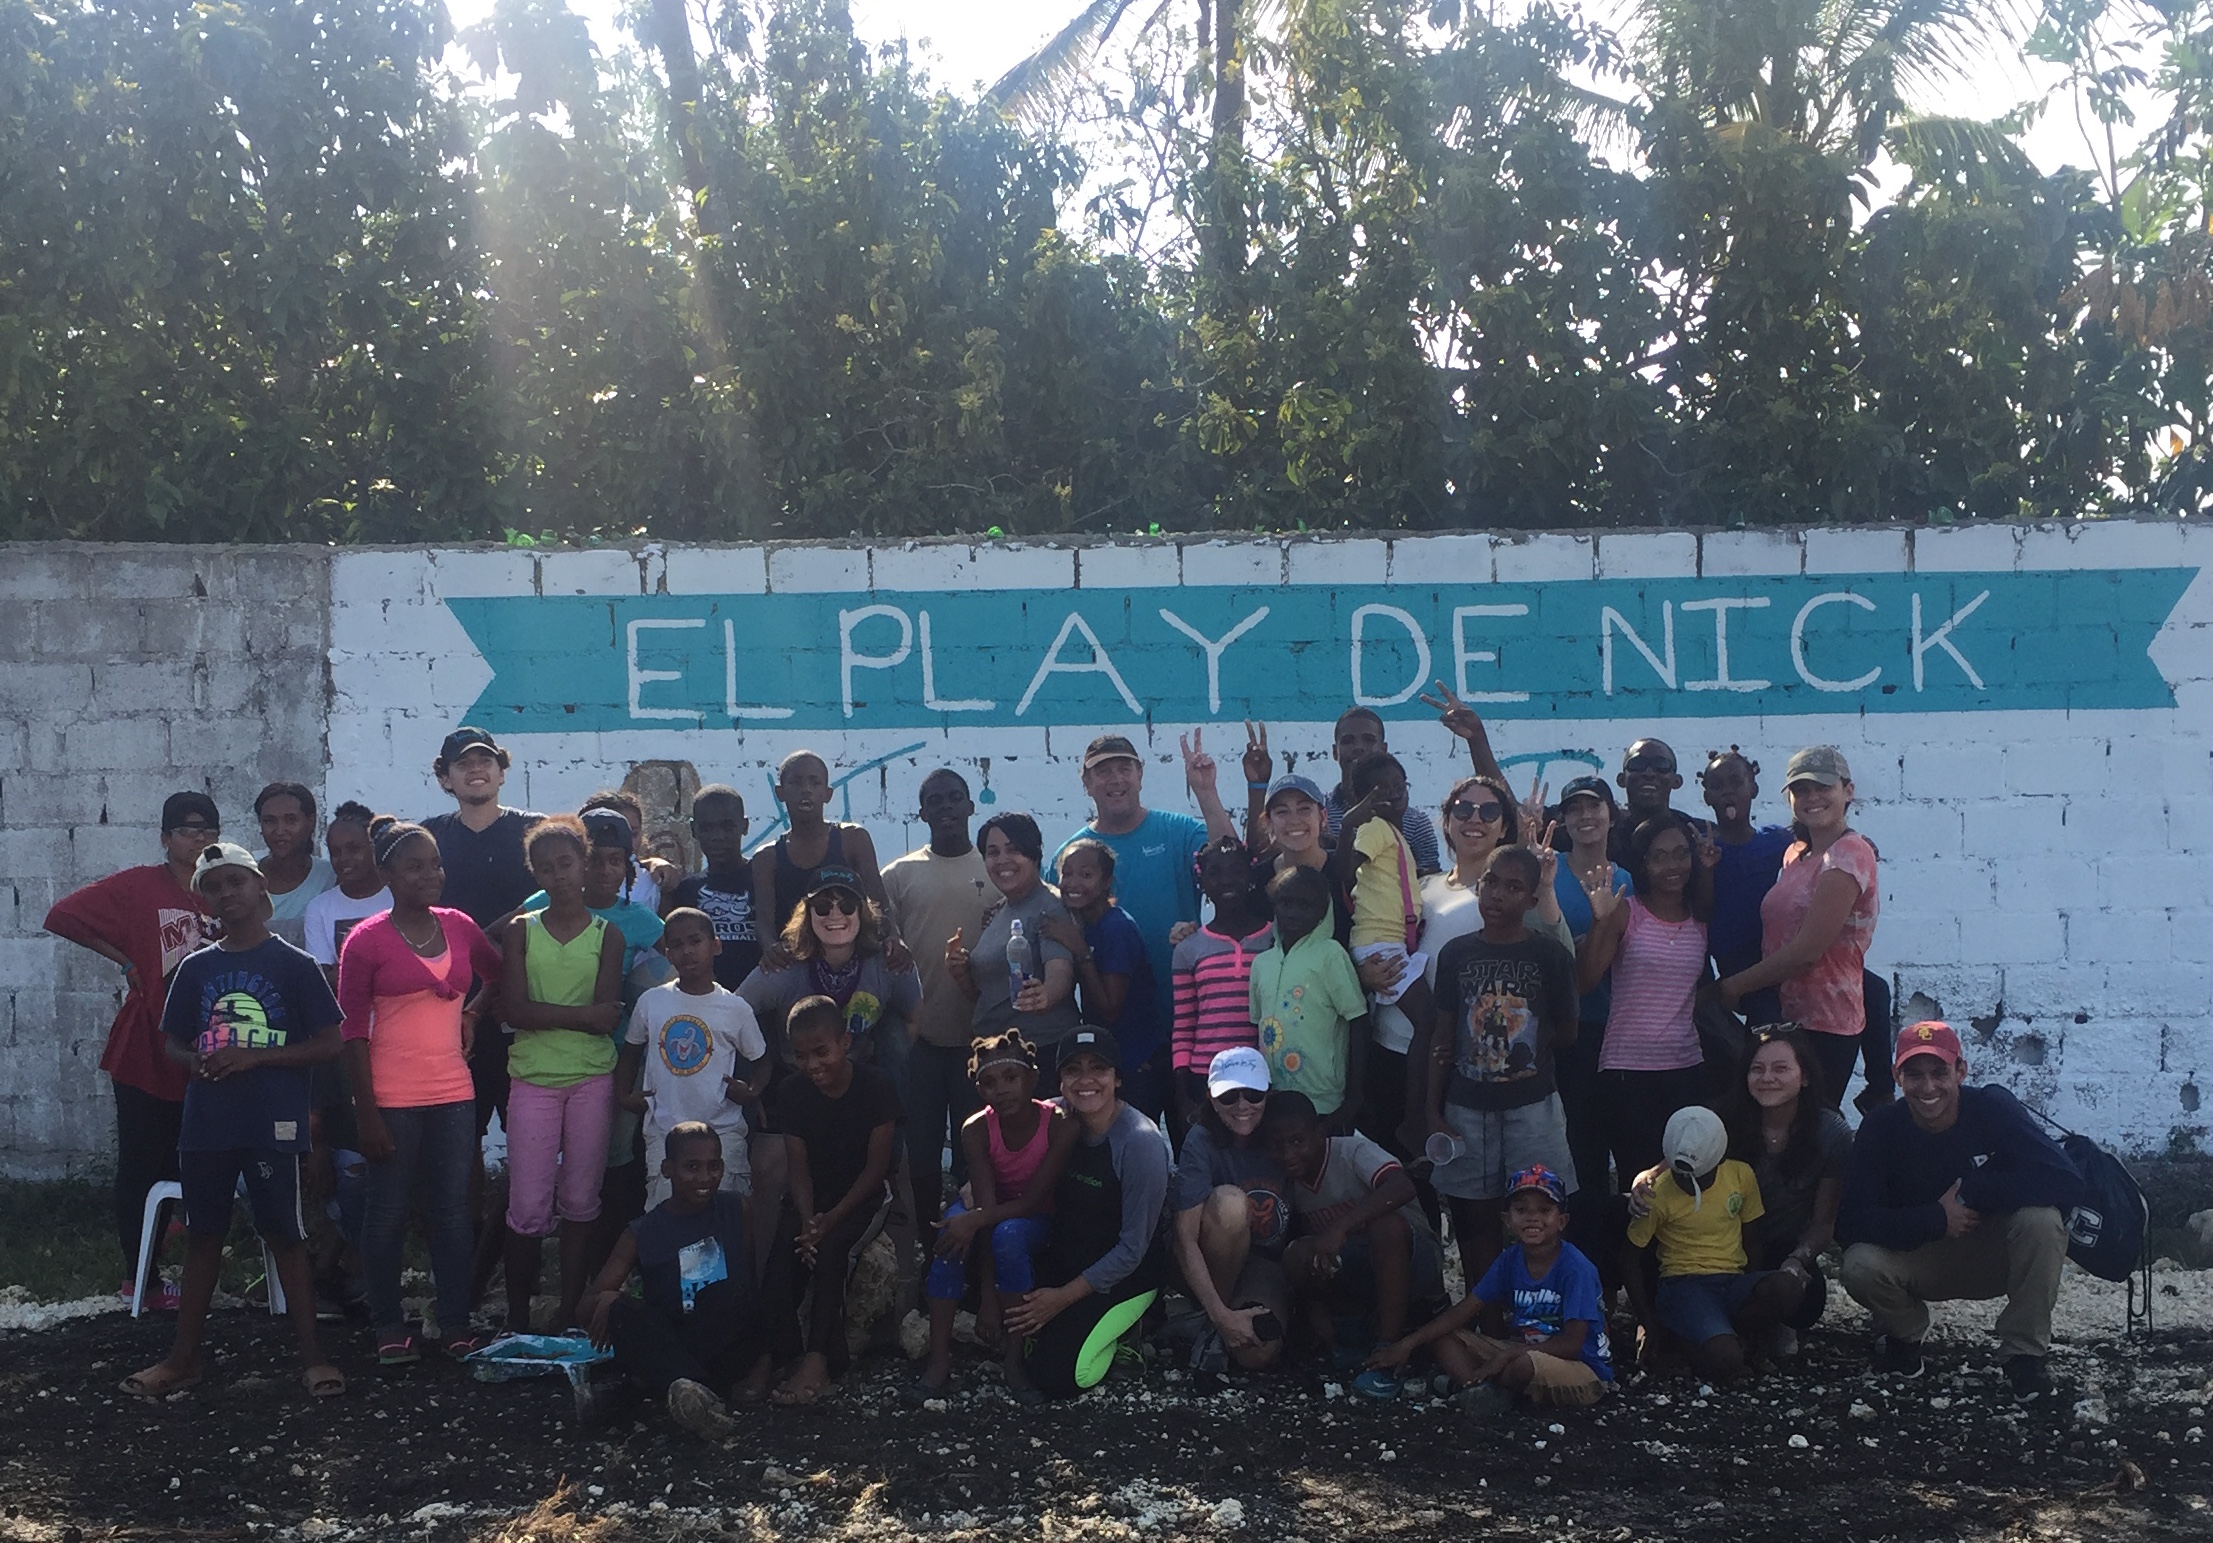 Children of the remar orphanage with mary & Jay fagnano are joined by Josue Najera (NDHS '12) and students from the USC caruso catholic center who traveled to the dominican republic in march 2017. this picture was taken at the dedication of the baseball field that was completed thanks to the generosity of thrive in joy nick fagnano foundation donors.